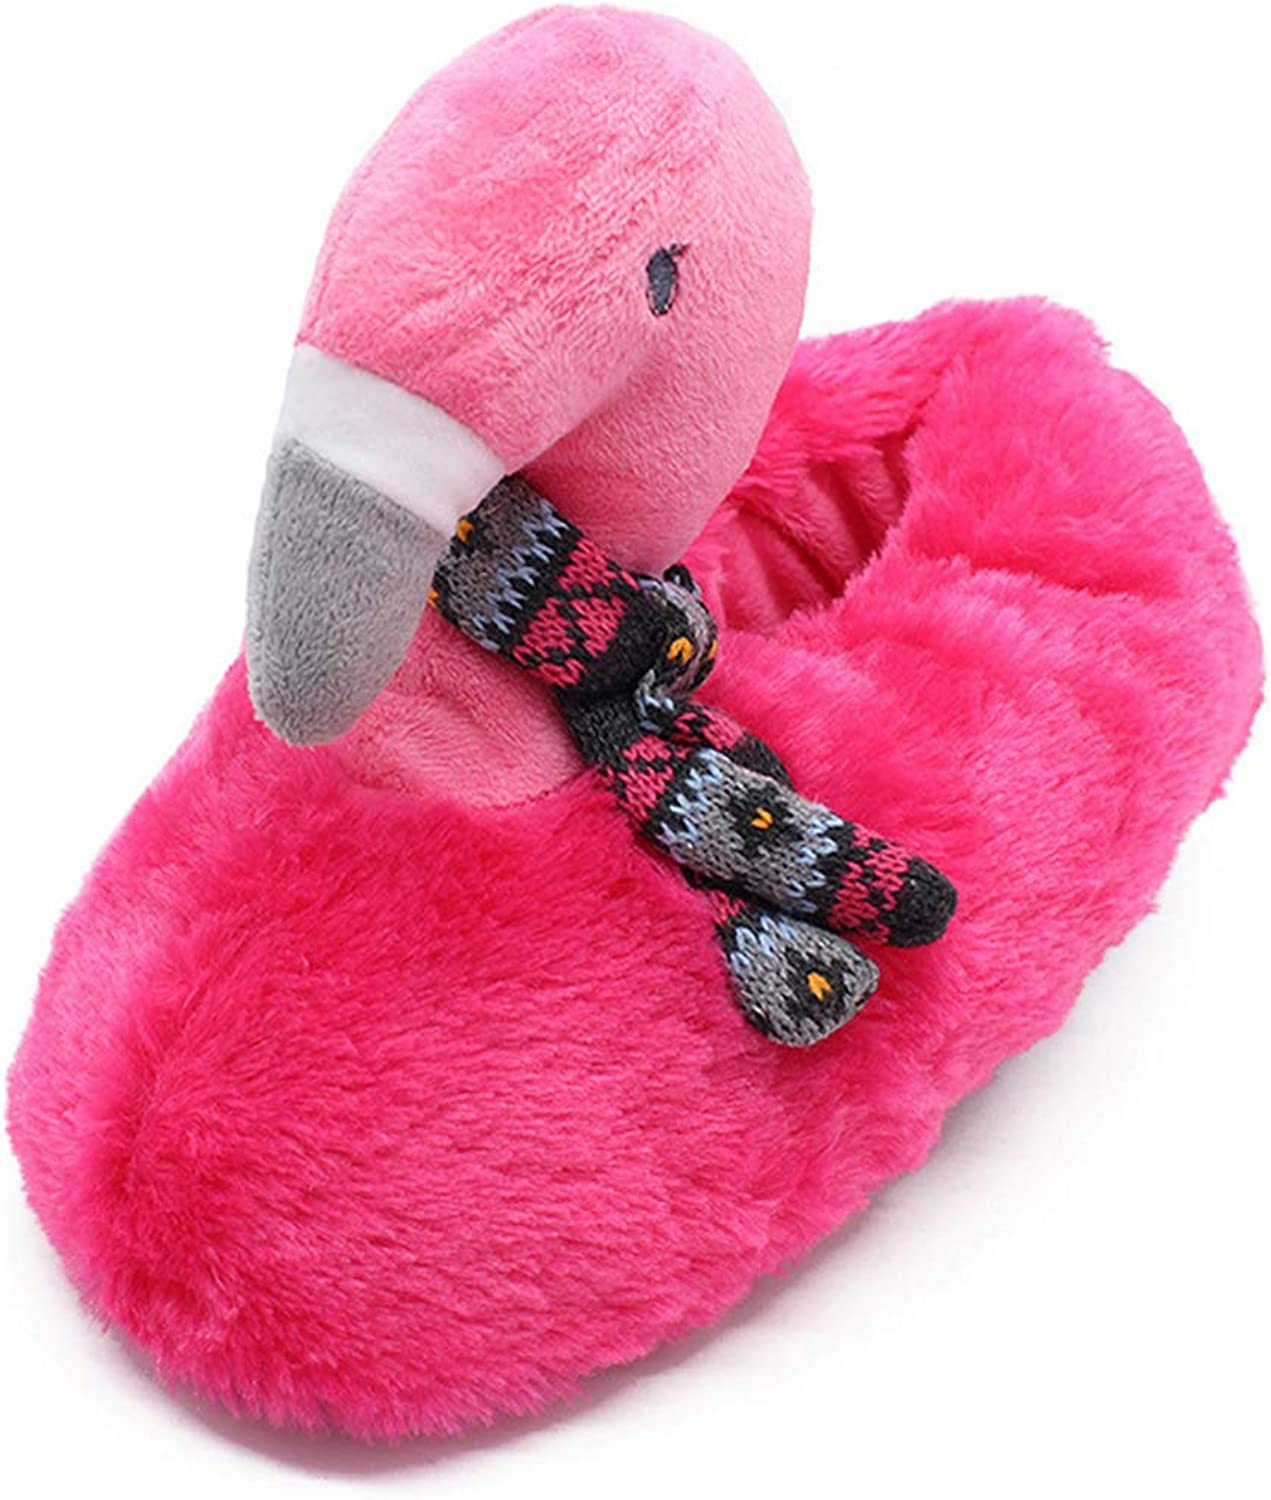 Nafanio Winter Flamingo Boots Slippers Soft Plush shoes Women House Indoor Fur Cartoon Comfortable Bedroom Flats